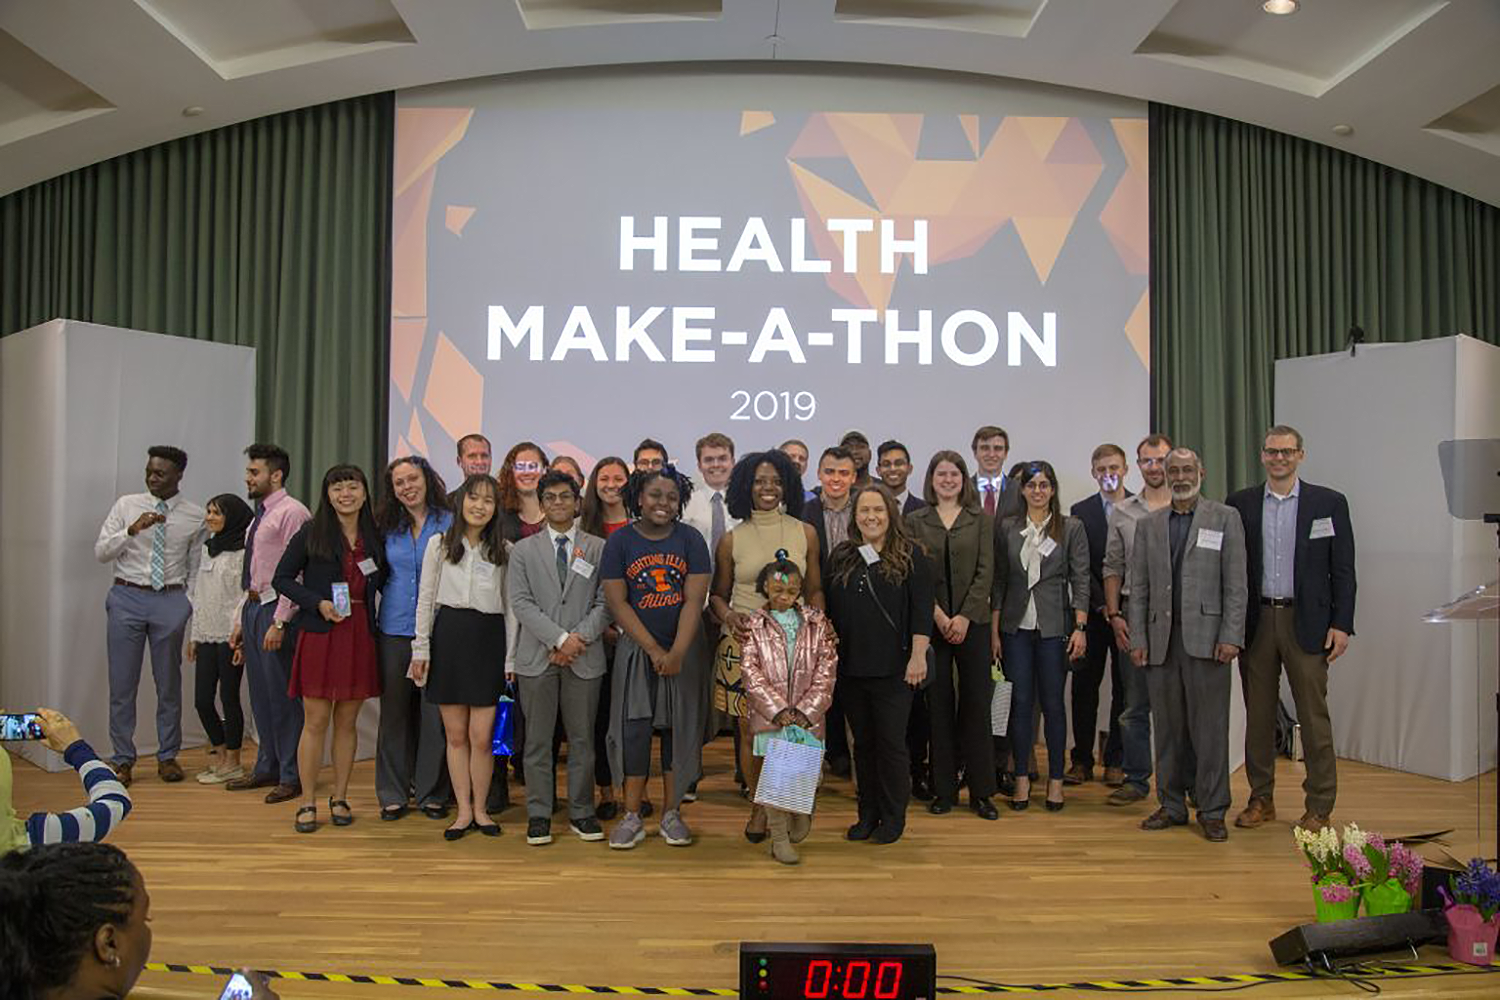 Health Make-a-thon participants pose for group photo